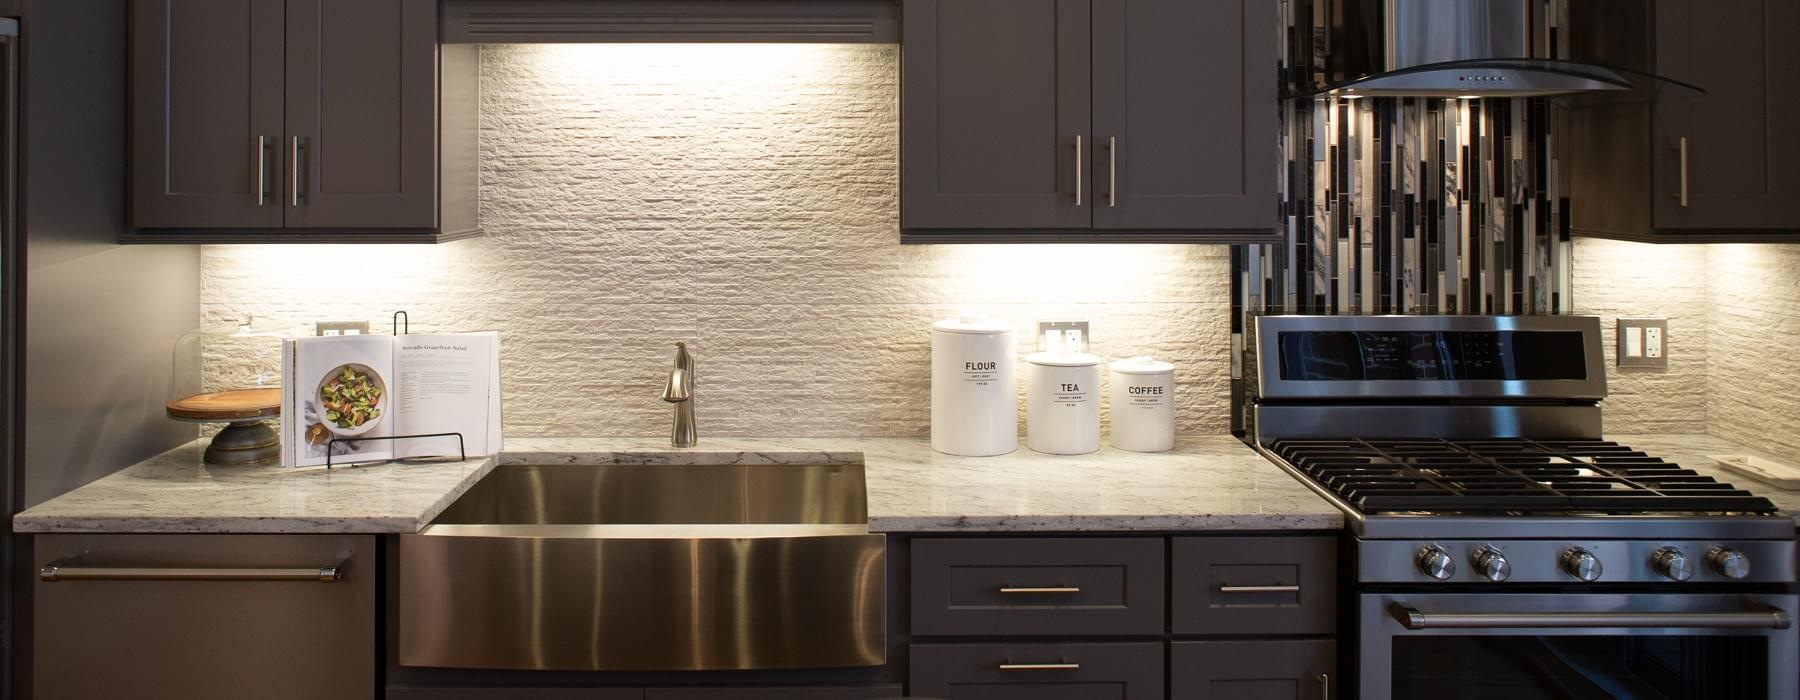 kitchen with lighting under cabinets brightening countertops